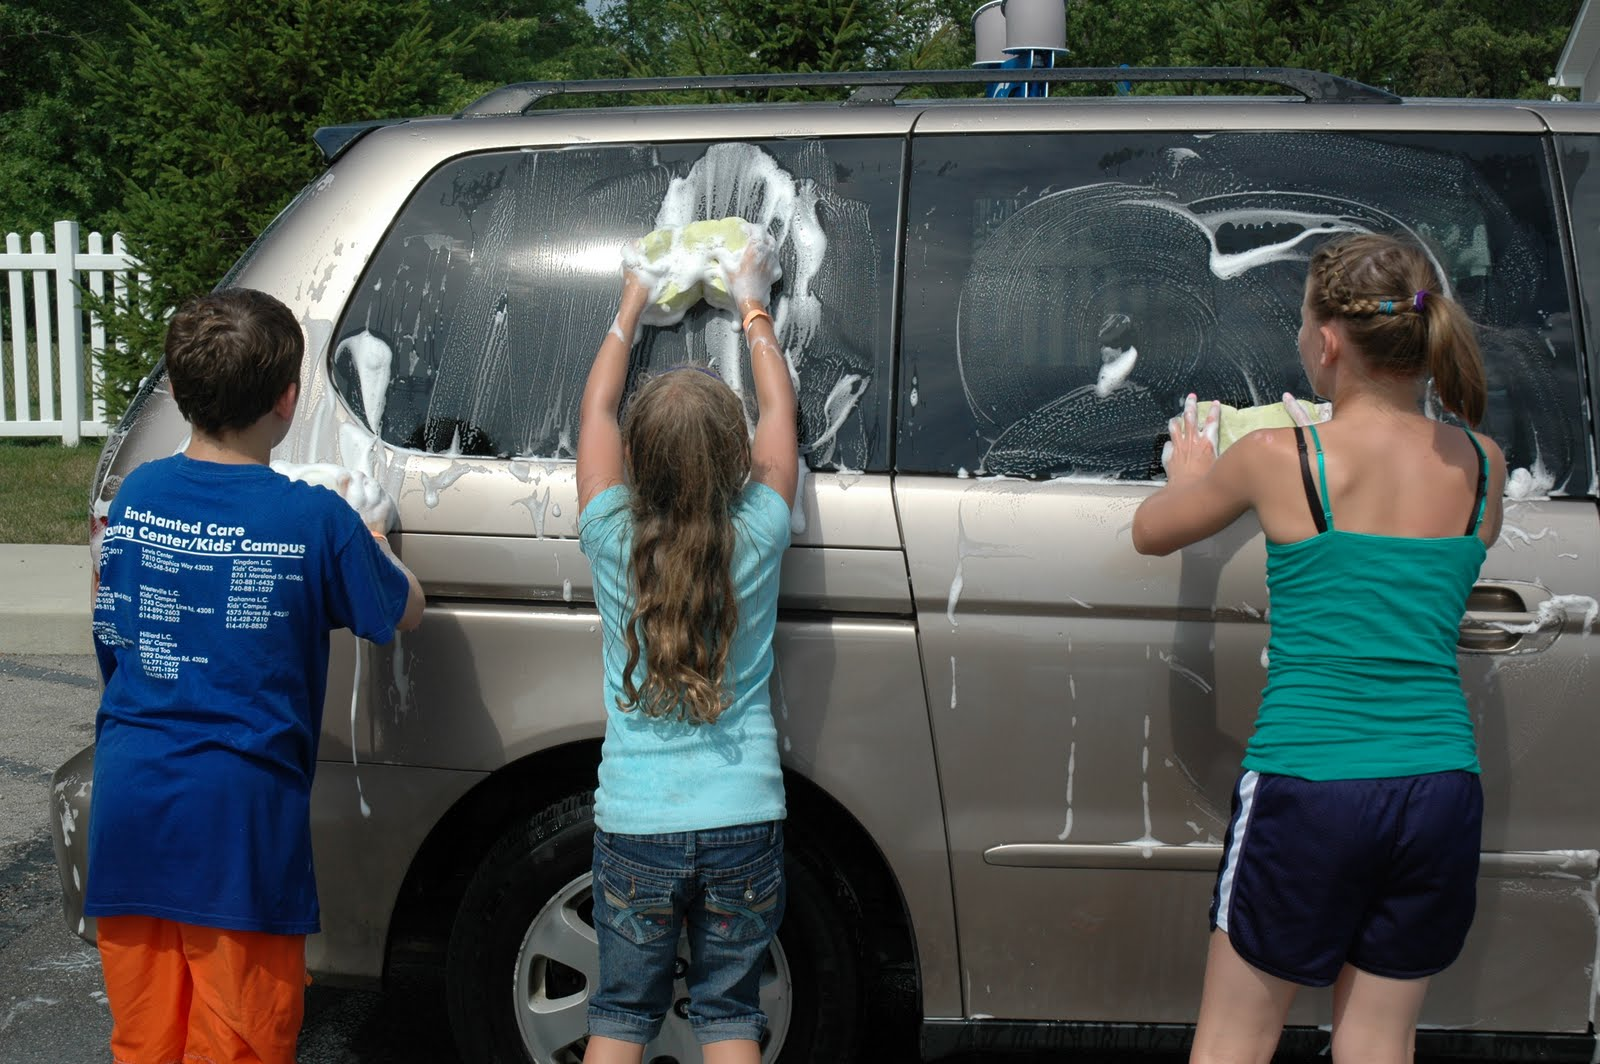 Camp Zone 2010 Crew X Charity Car Wash